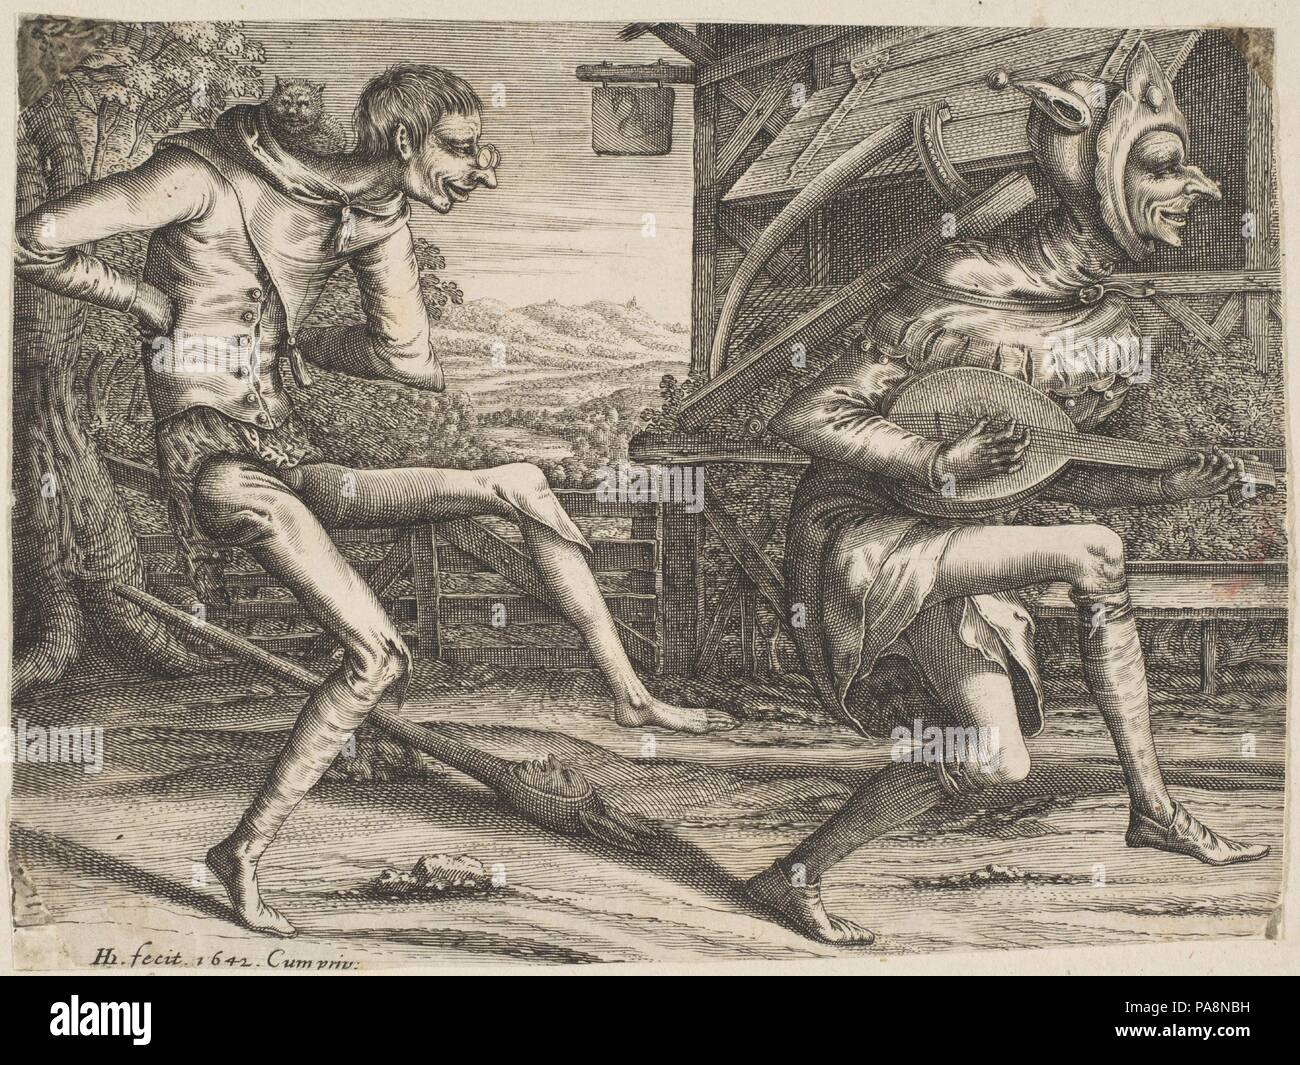 Two Fools Dancing from Two and Three Fools of the Carnival. Artist: After Pieter Bruegel the Elder (Netherlandish, Breda (?) ca. 1525-1569 Brussels); Hendrick Hondius I (Netherlandish, Duffel 1573-1650 Amsterdam). Dimensions: Sheet: 4 7/16 x 5 7/8 in. (11.2 x 15 cm). Date: 1642. Museum: Metropolitan Museum of Art, New York, USA. - Stock Image